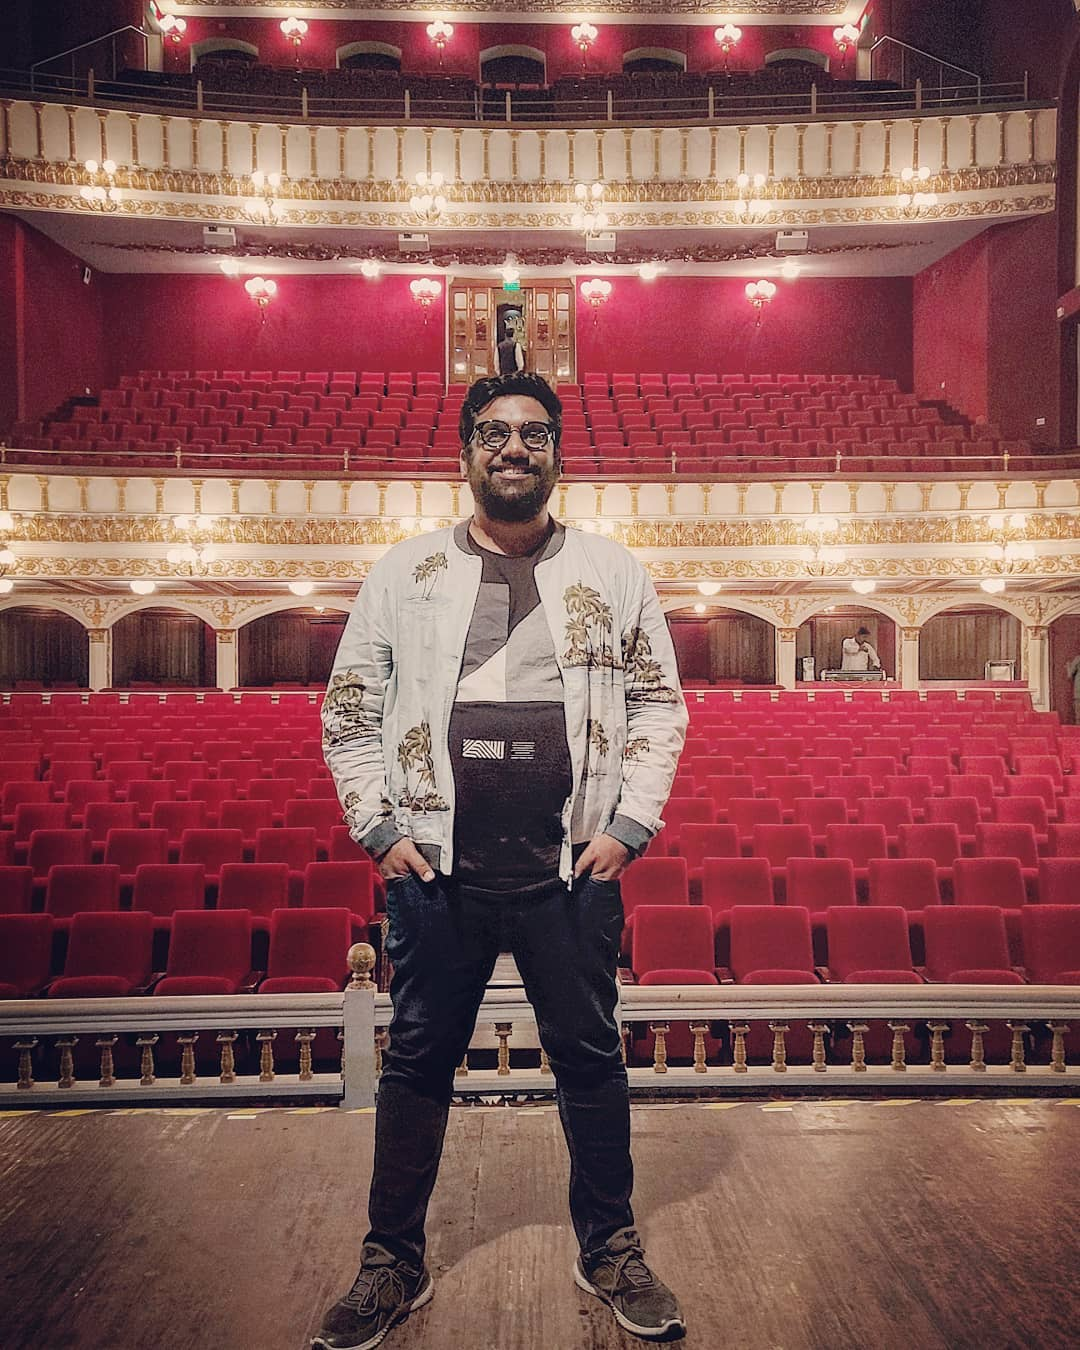 Performed at this epic venue. Great time with a bunch of kutchi jains.  #StandUpComedy #RoyalOperaHouse